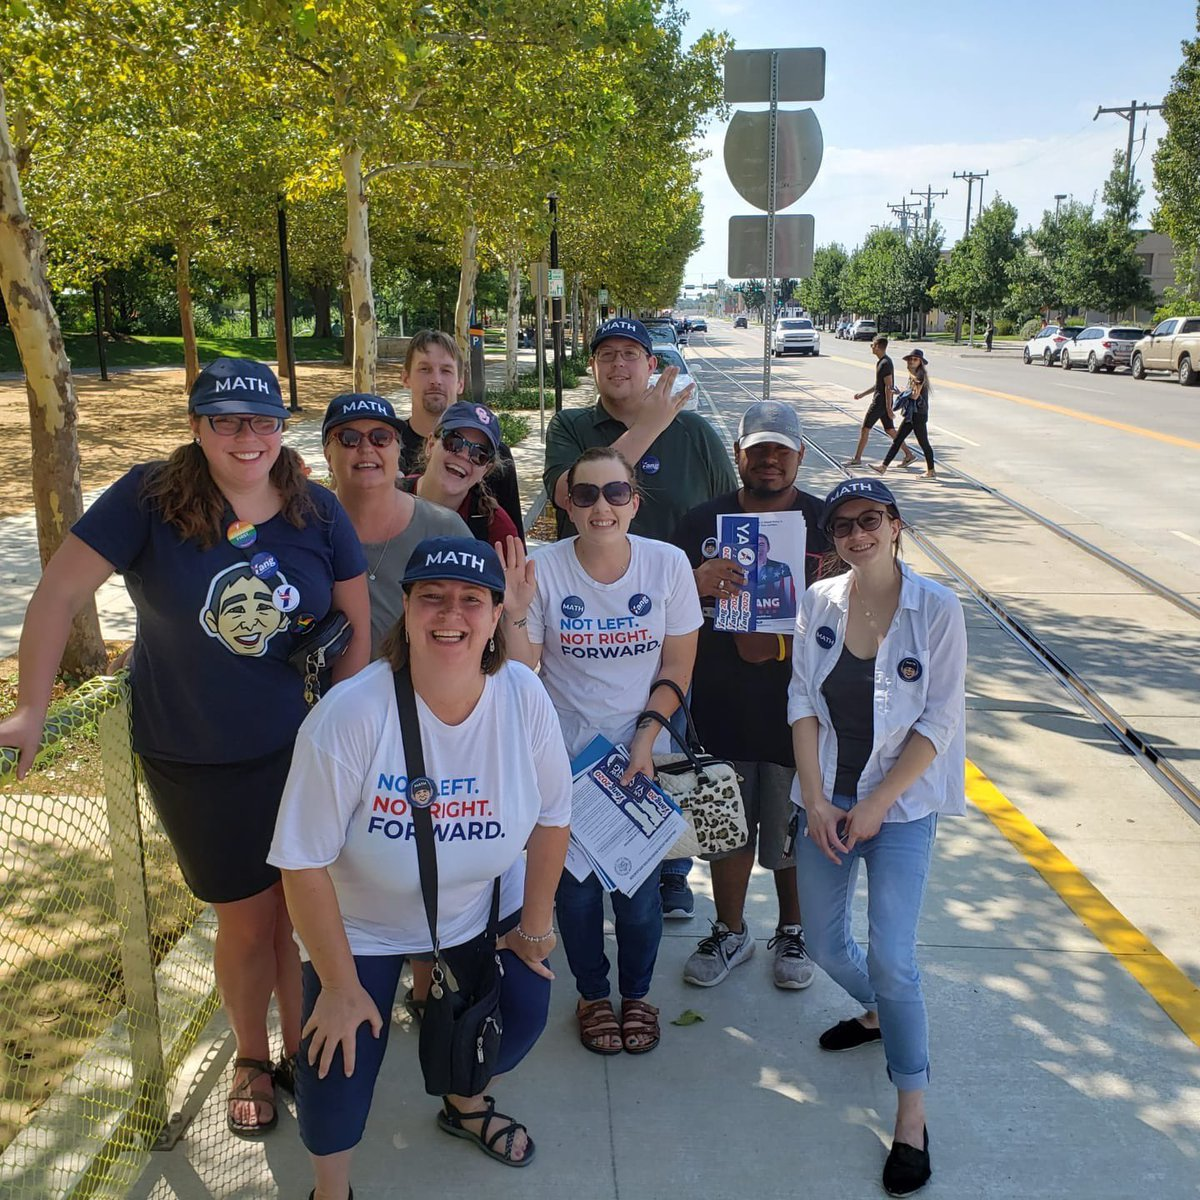 Hey @AndrewYang, the OKC #YangGang did some canvassing today downtown! Thank you for putting #HumanityFirst, let's move this country #FORWARD!!